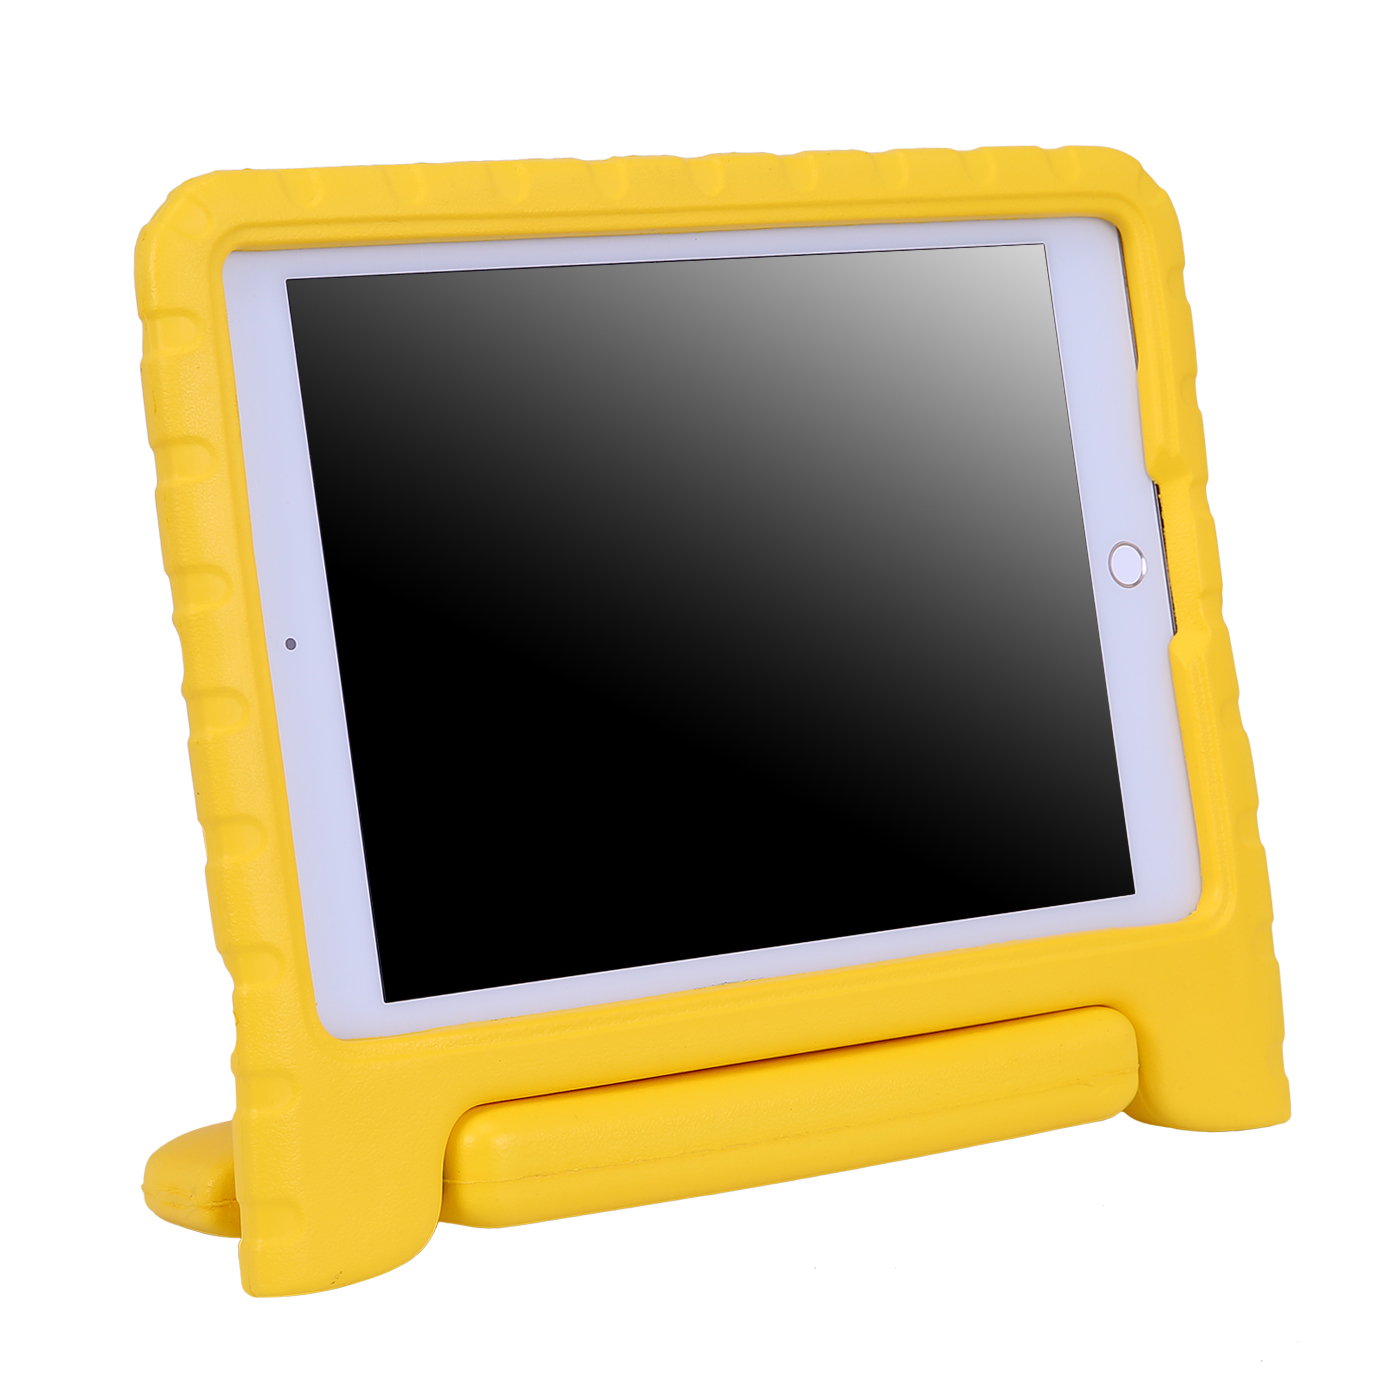 HDE iPad Air 1 Case for Kids Bumper Cover Shockproof Protection Handle Stand for iPad 5 (Orange)